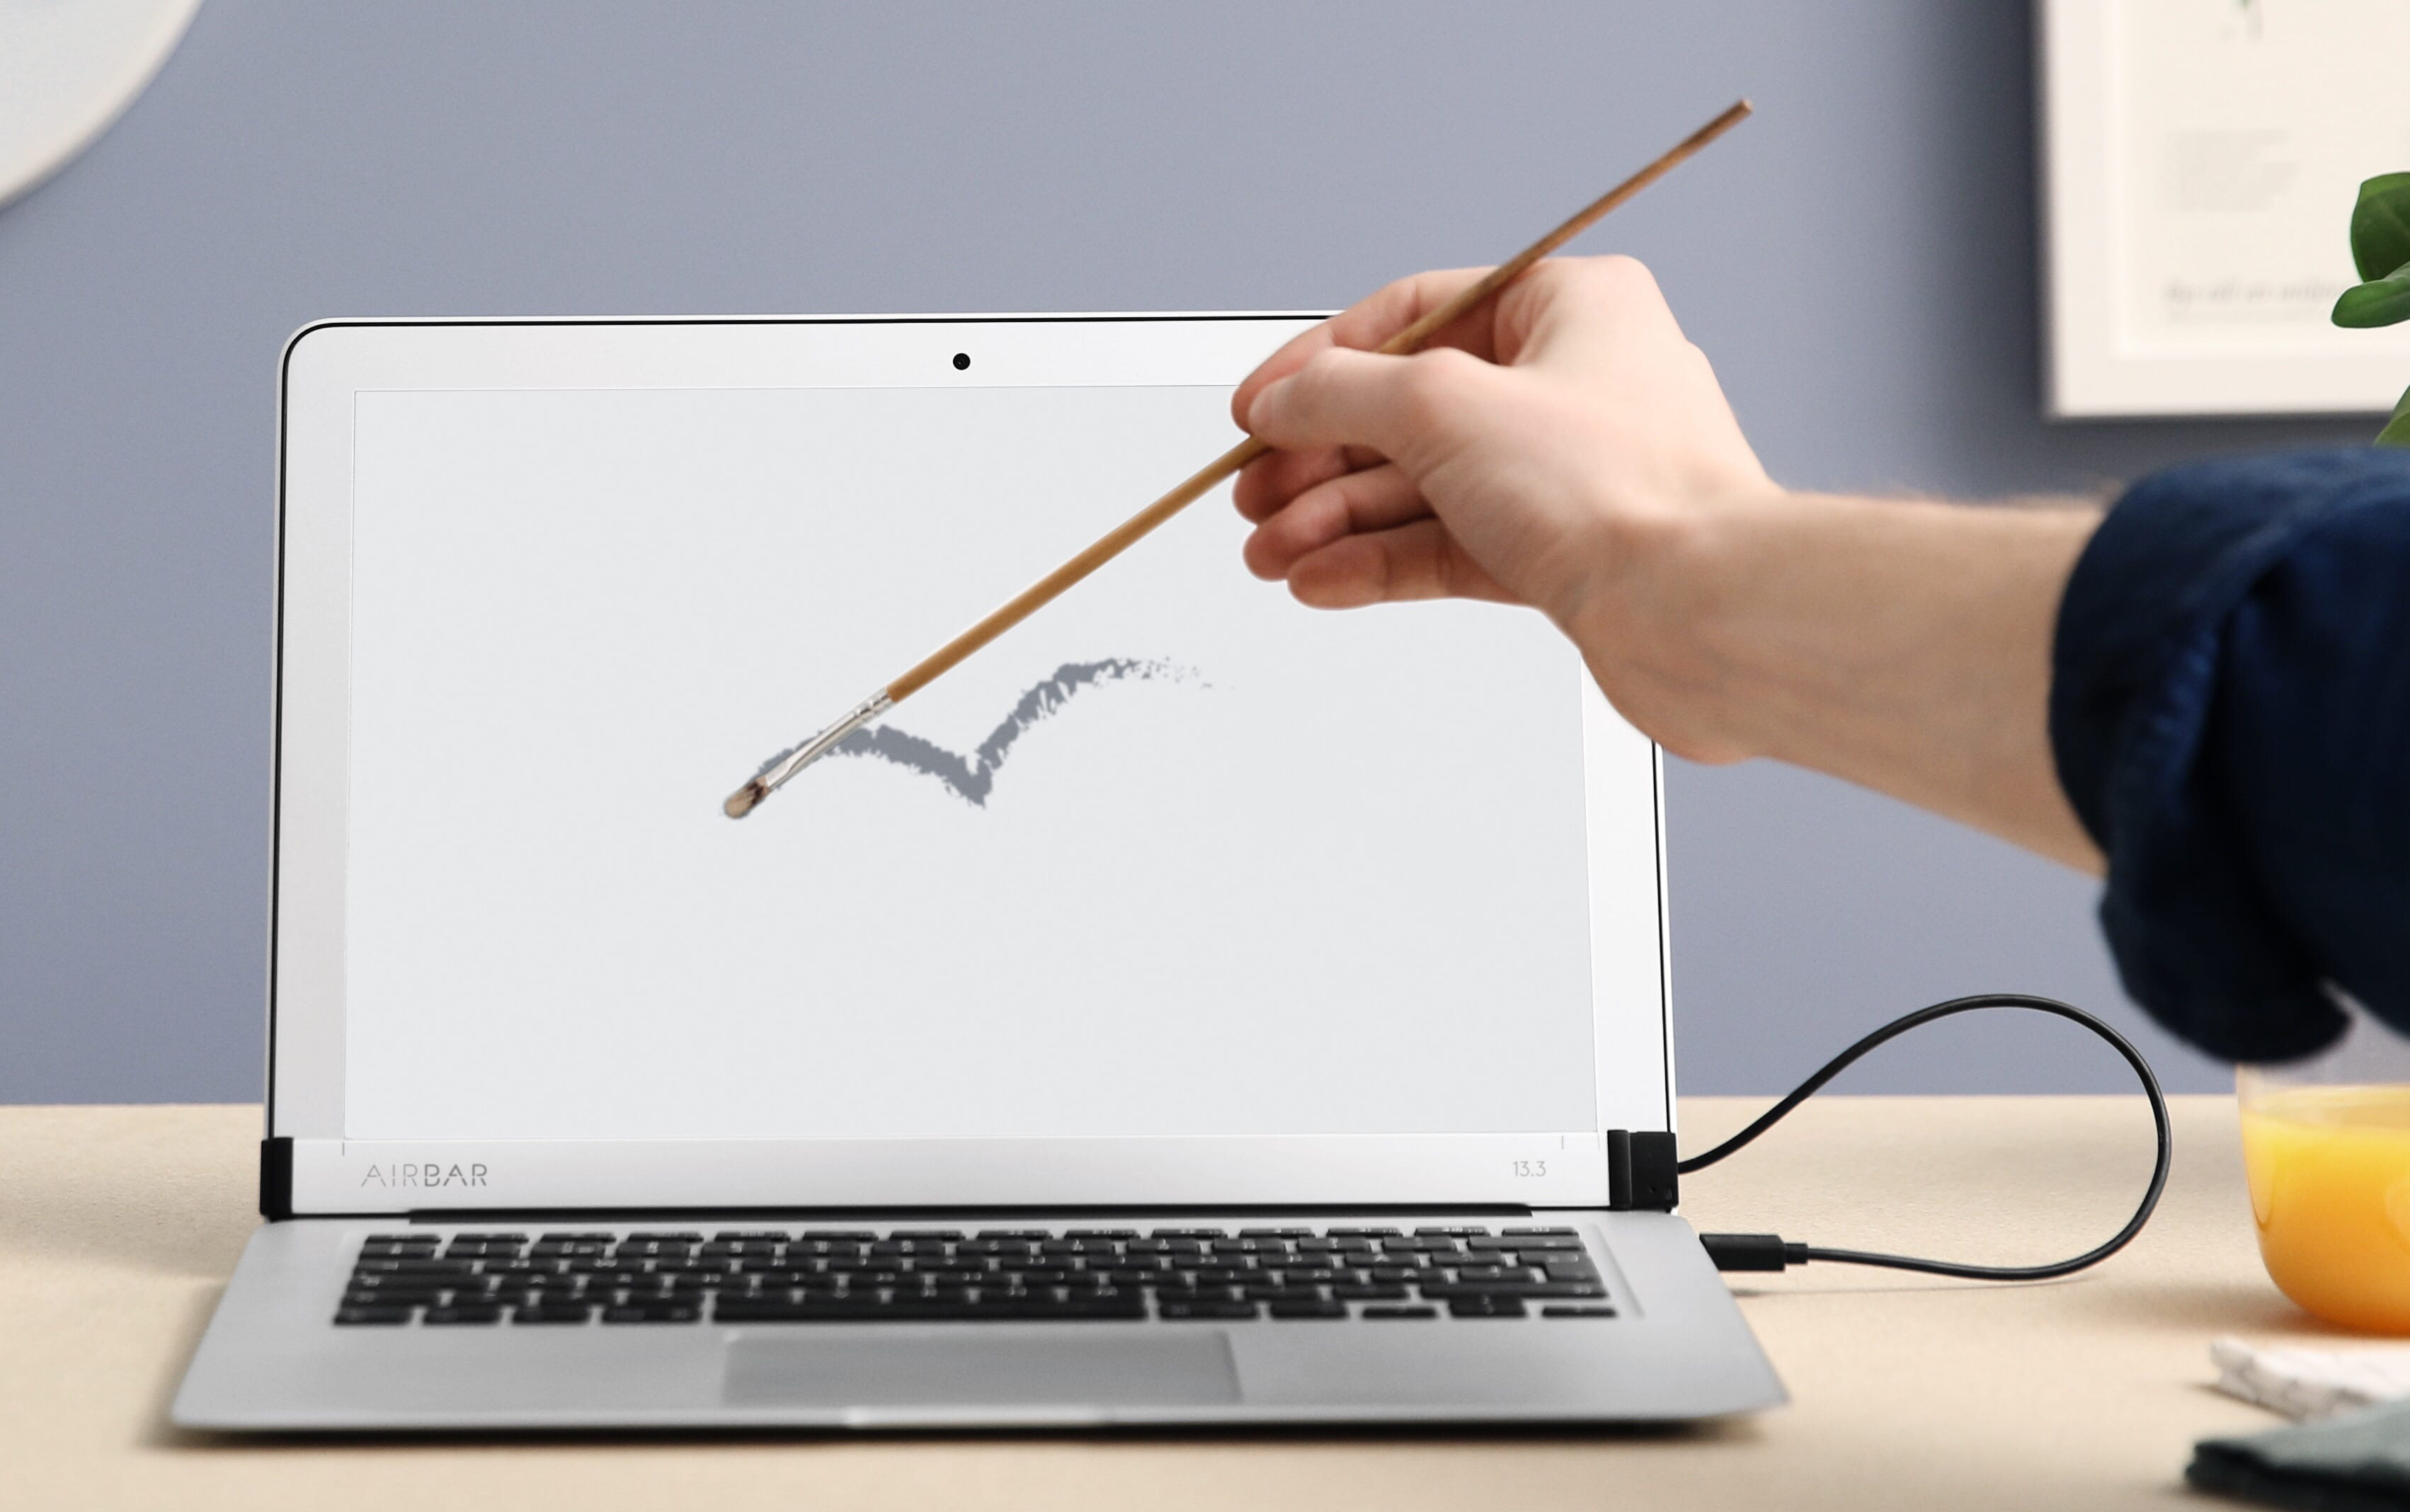 Airbar ajoute un cran tactile au macbook air 13 for Mac fenetre hors ecran